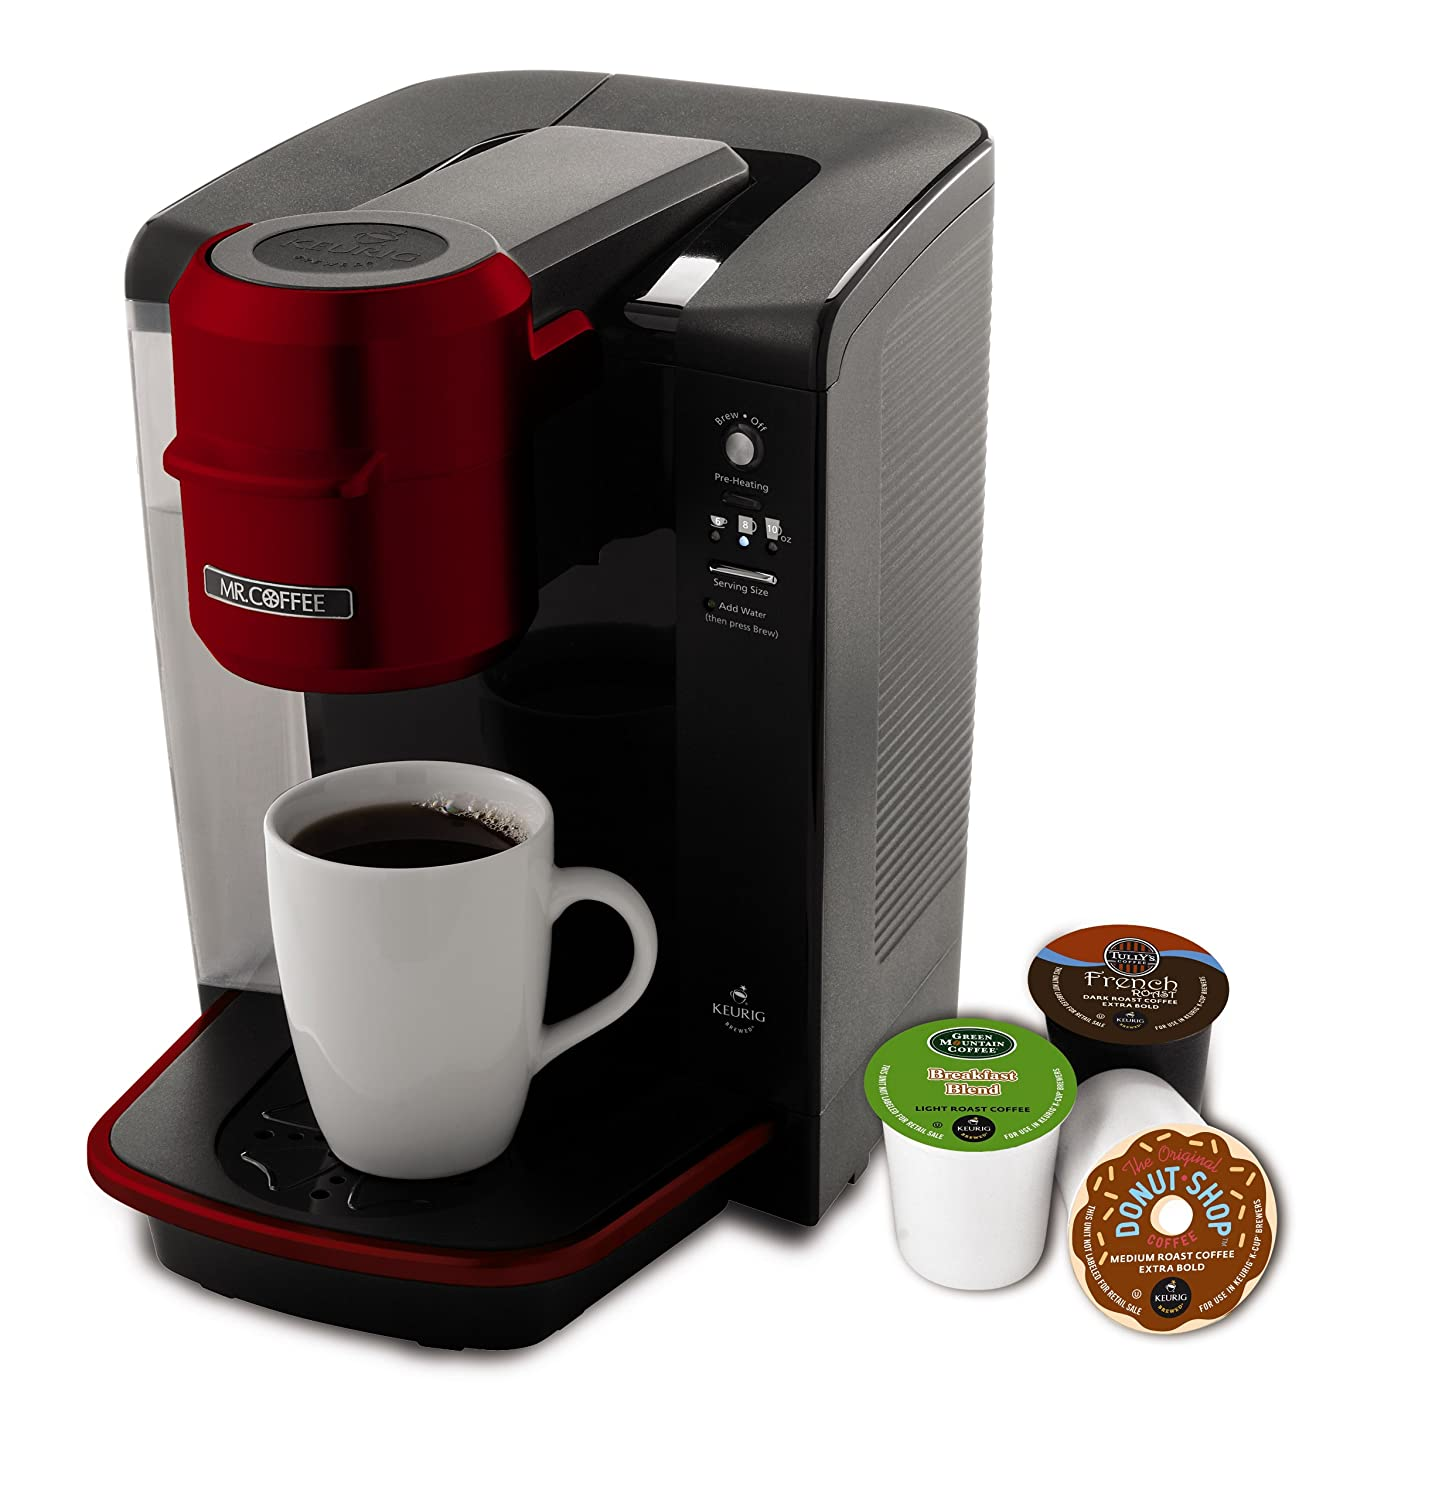 Mr. Coffee BVMC-KG6R-001 Single Serve Coffee Brewer